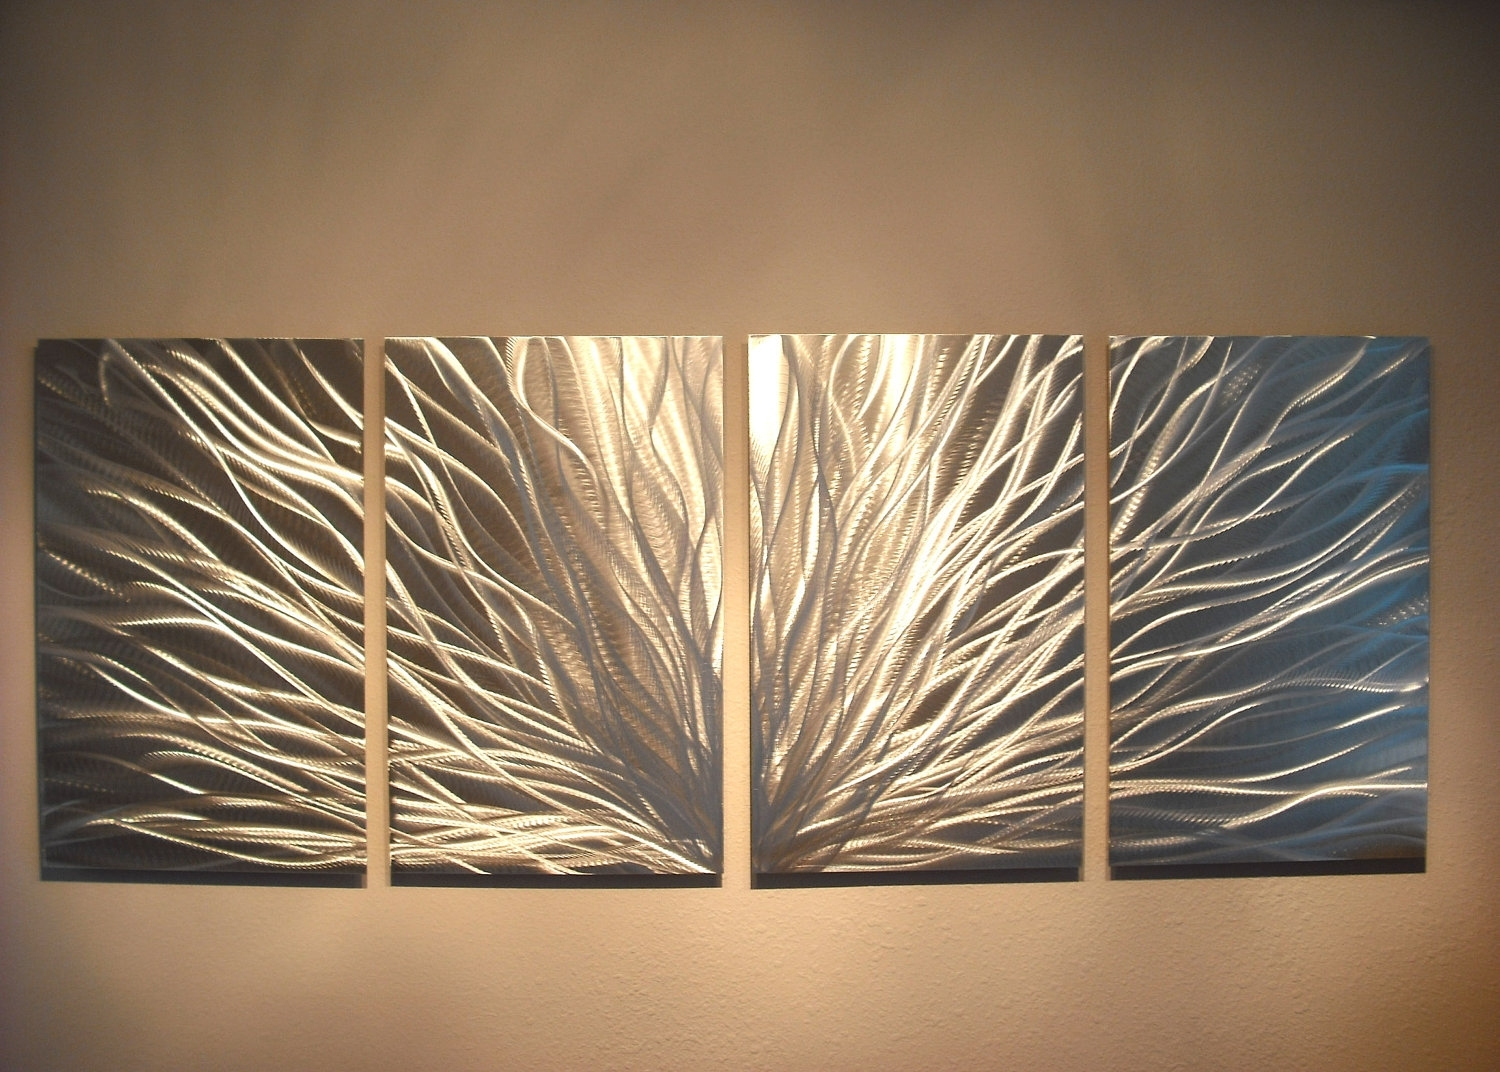 Radiance – Abstract Metal Wall Art Contemporary Modern Decor On Storenvy Pertaining To 2018 Art Wall Decor (View 14 of 20)